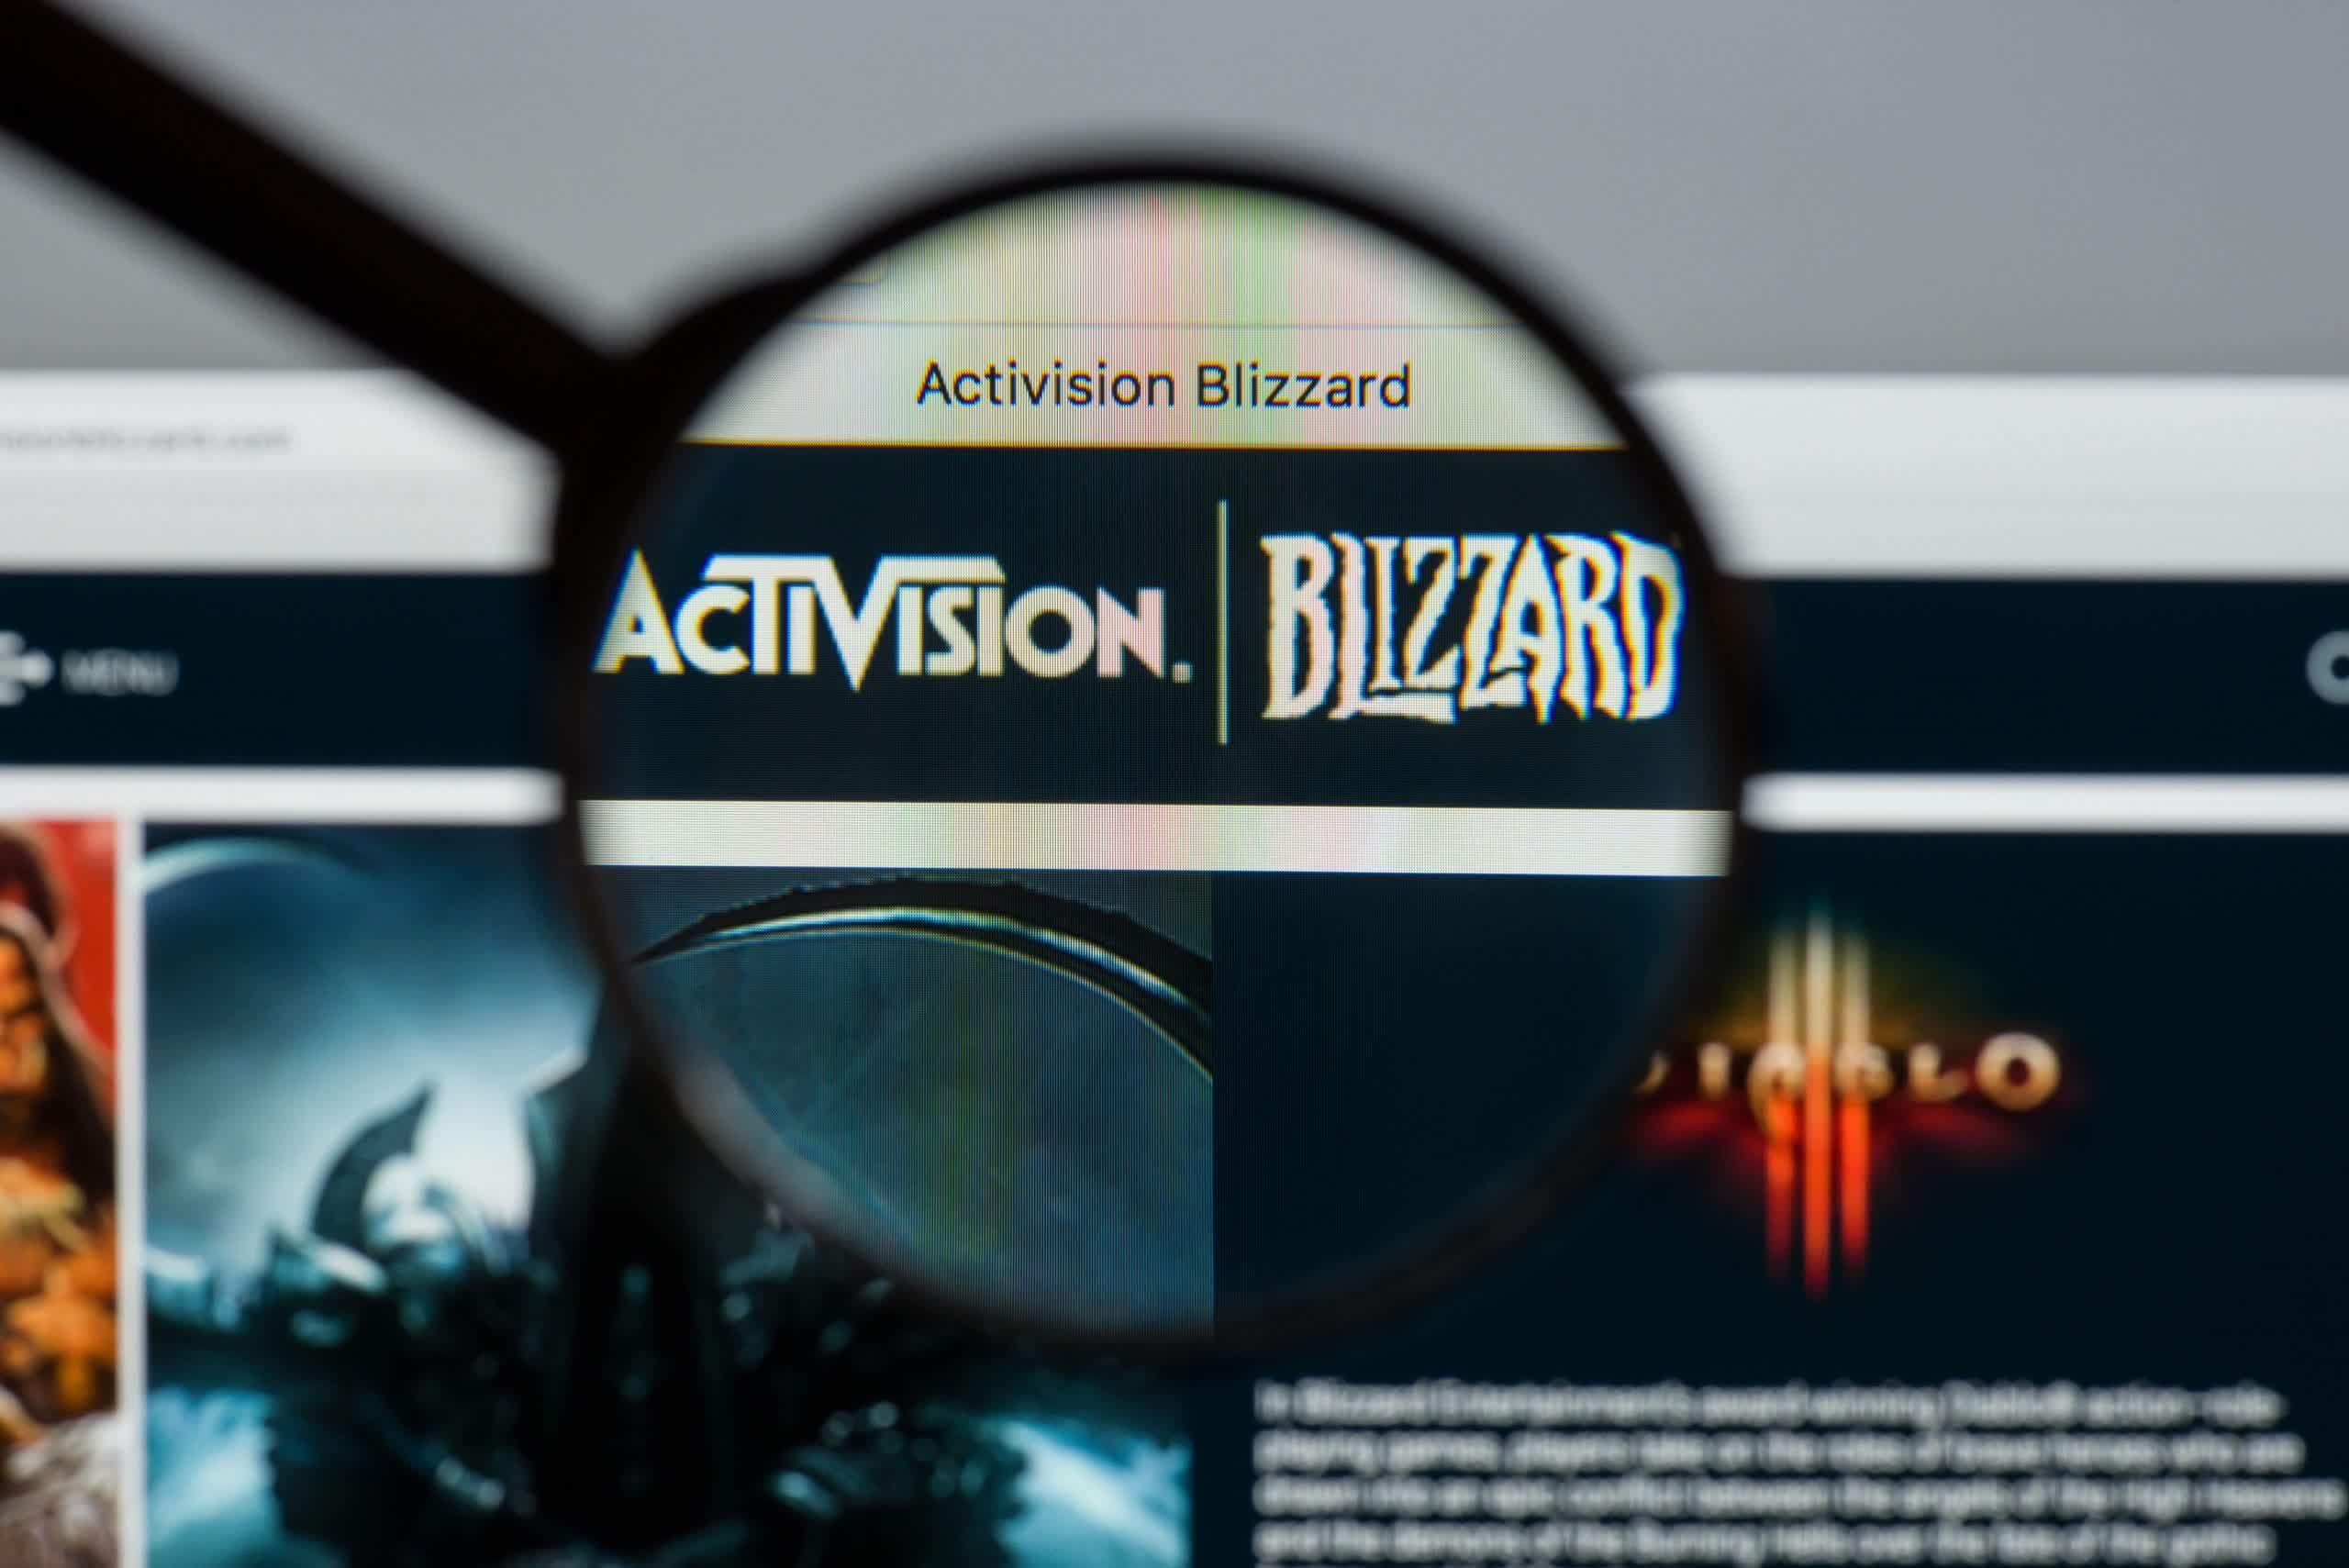 Activision Blizzard to triple Call of Duty development after earnings exceed expectations